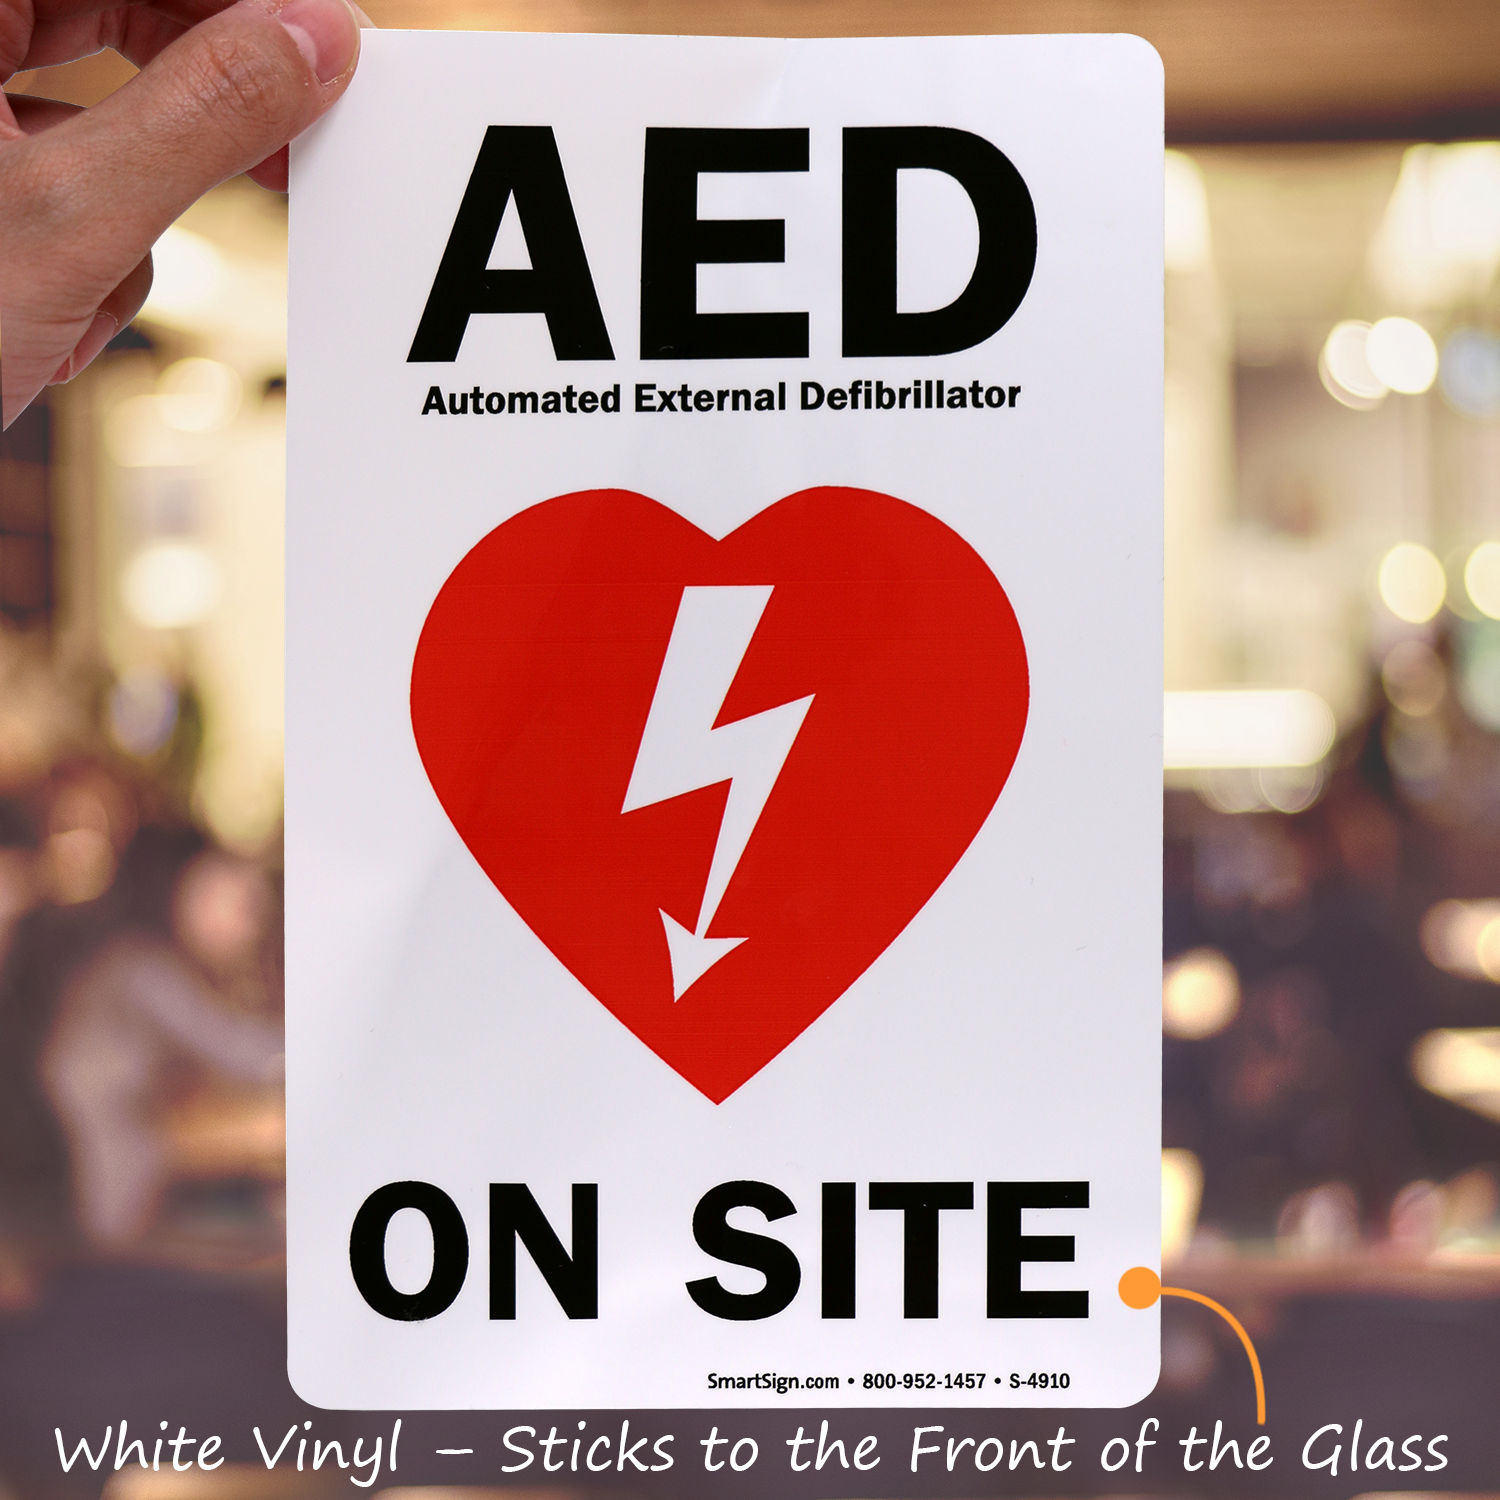 Aed Automated External Defibrillator On Site Sign Sku S 4910